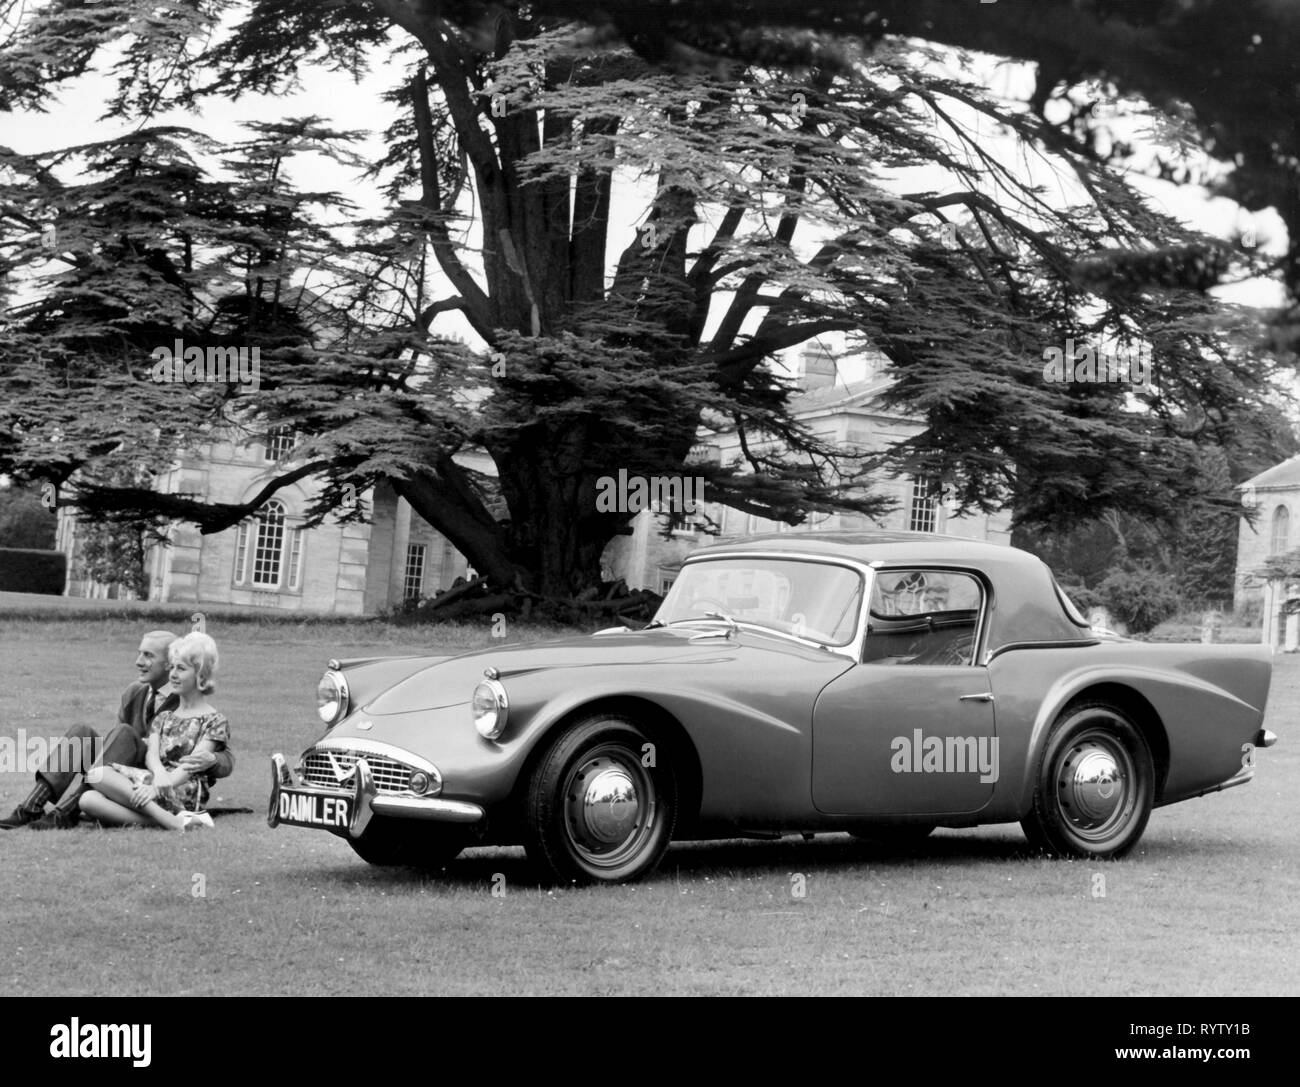 transport / transportation, car, vehicle variants, Daimler SP250, view from left ahead, Great Britain, 1960, SP 250, sports car, sports cars, roadsters, roadster, two-door model, twoseater, United Kingdom, park, parks, motor car, auto, automobile, passenger car, motorcar, motorcars, autos, automobiles, passenger cars, German, clipping, cut out, cut-out, cut-outs, 1960s, 60s, 20th century, people, couple, couples, transport, transportation, car, cars, view, views, historic, historical, Additional-Rights-Clearance-Info-Not-Available - Stock Image